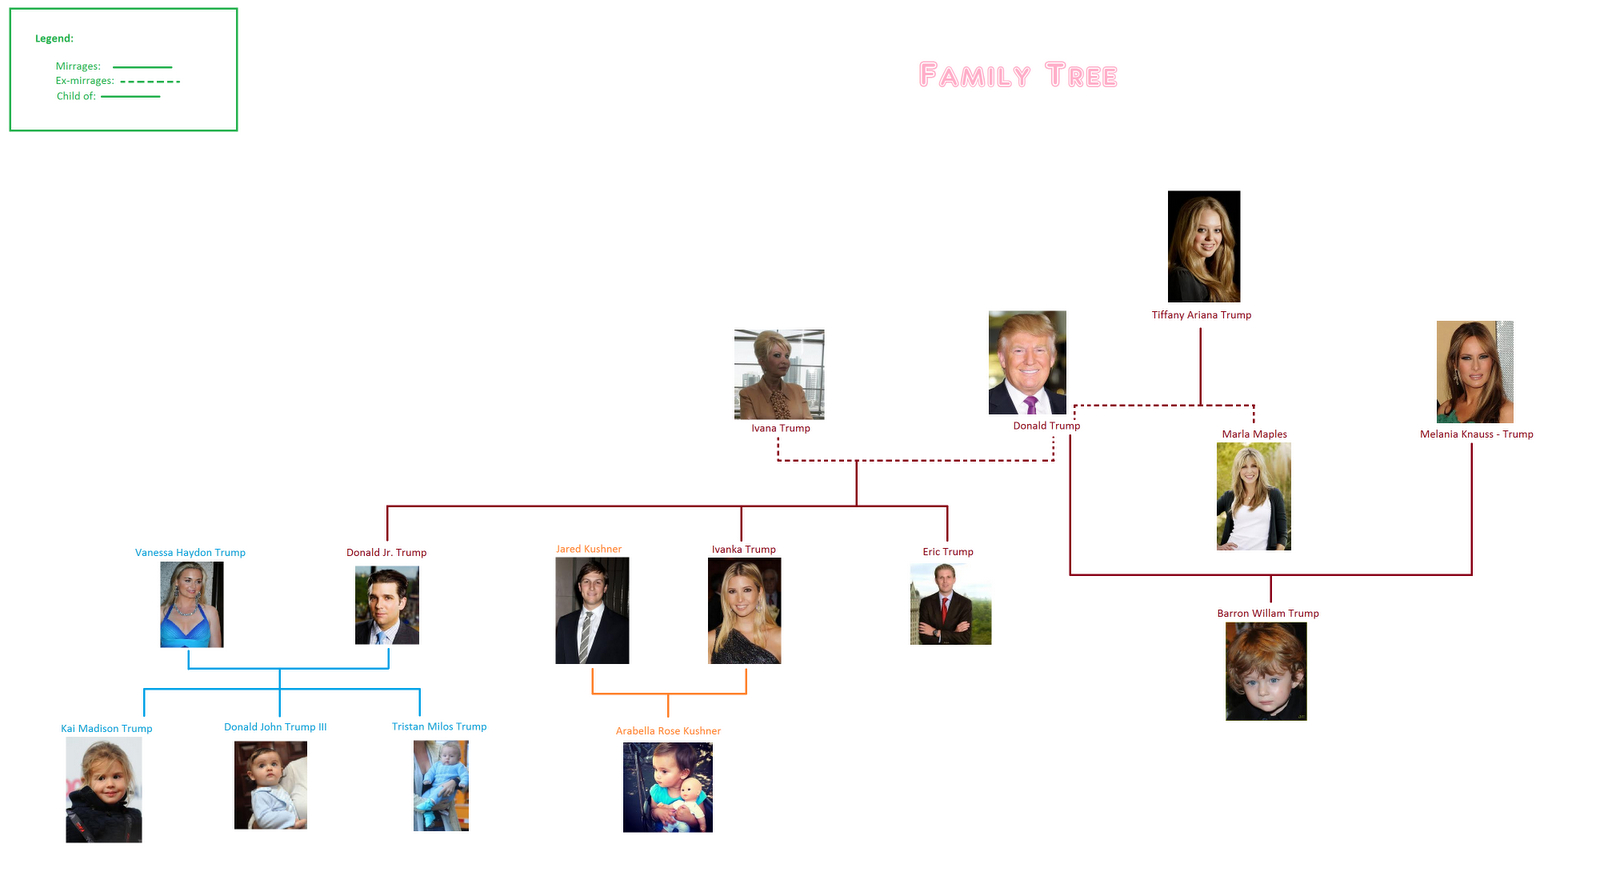 Family Tree by Donald Senior Trump